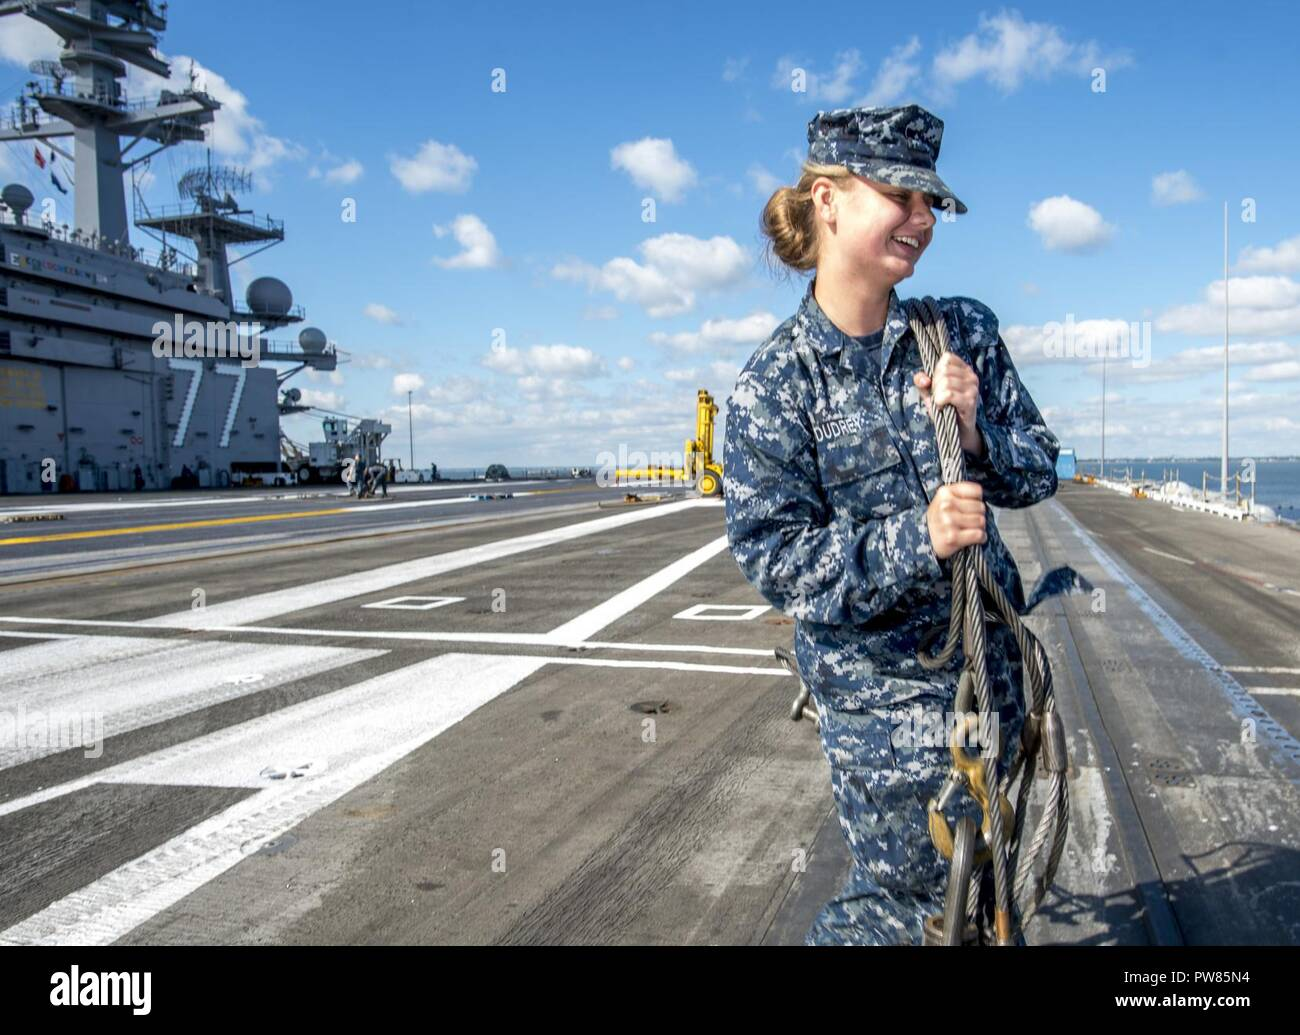 NORFOLK, Va (Oct. 2, 2017) Aviation Boatswain's Mate (Equipment) Sarah Dudrey walks an arresting gear cable across the flight deck of the aircraft carrier USS George H.W. Bush (CVN 77). The ship is in port Norfolk, Virginia, conducting routine maintenance after a seven-month deployment in support of maritime security operations and theater security cooperation efforts in the U.S. 5th and 6th Fleet areas of responsibility. Stock Photo